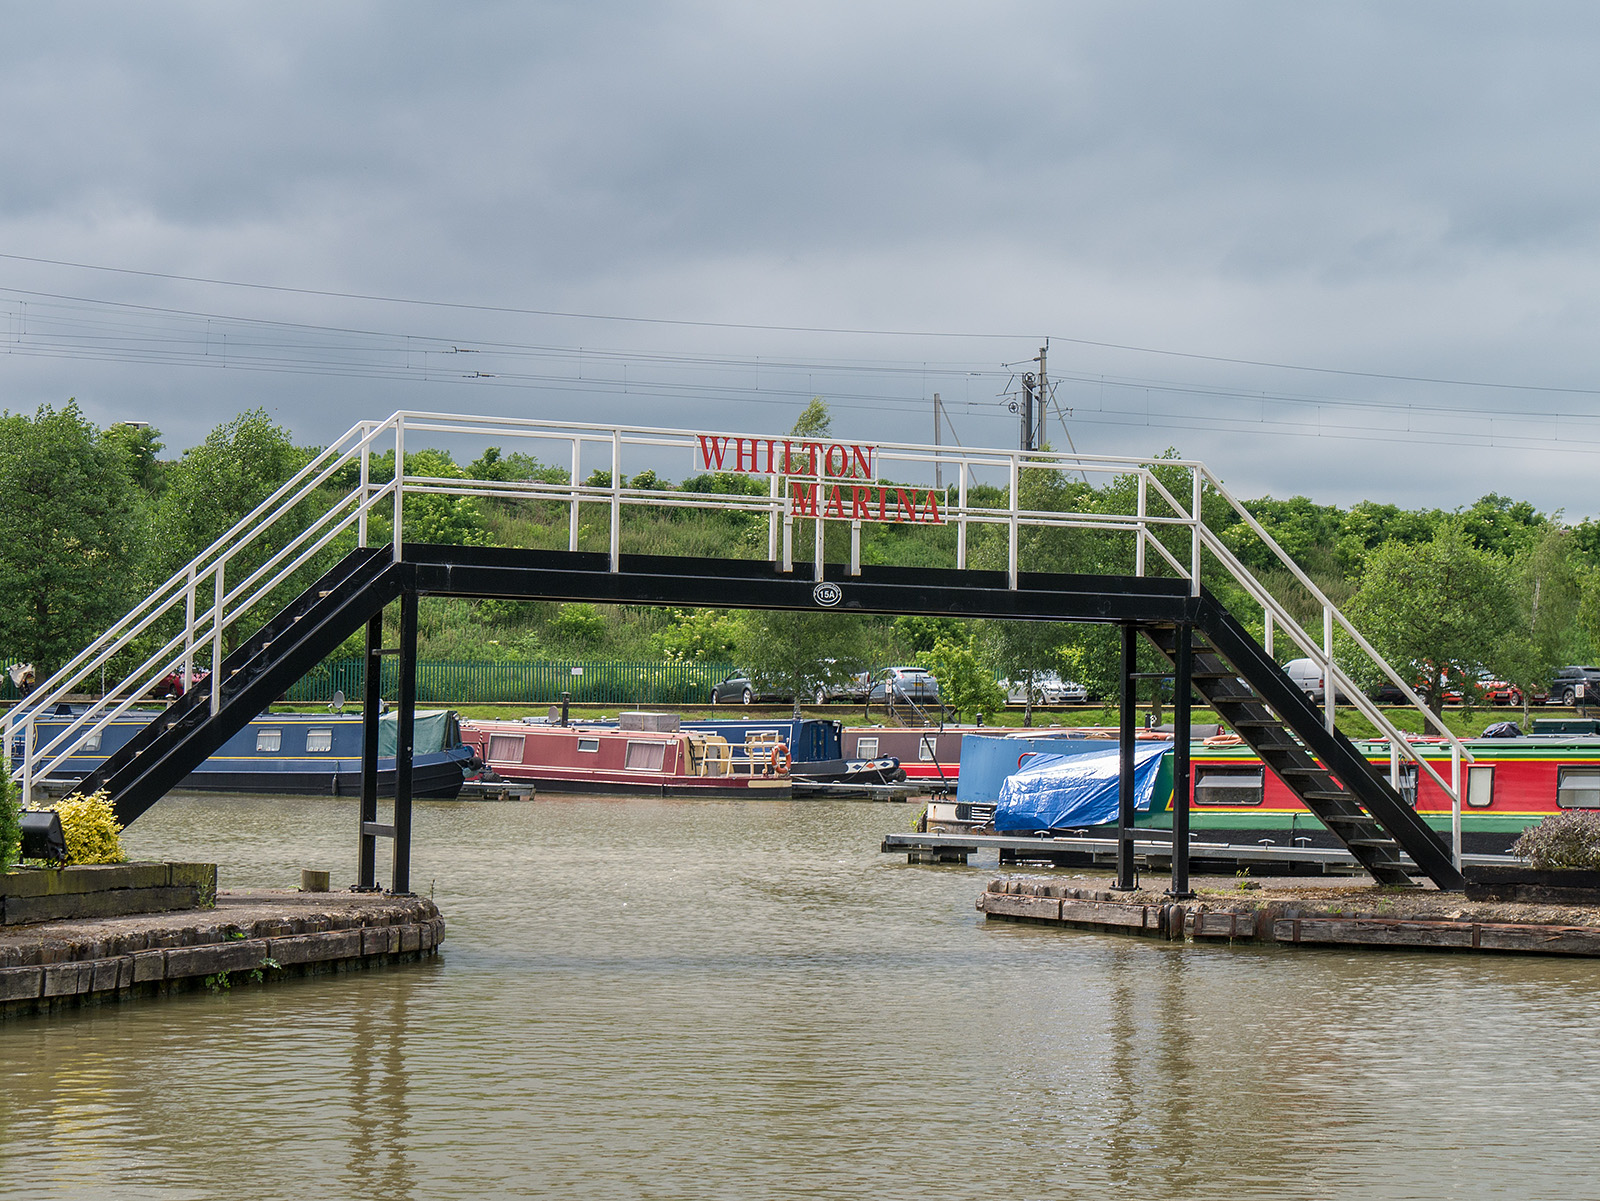 Whilton Marina - there's a karting circuit nearby here somewhere...